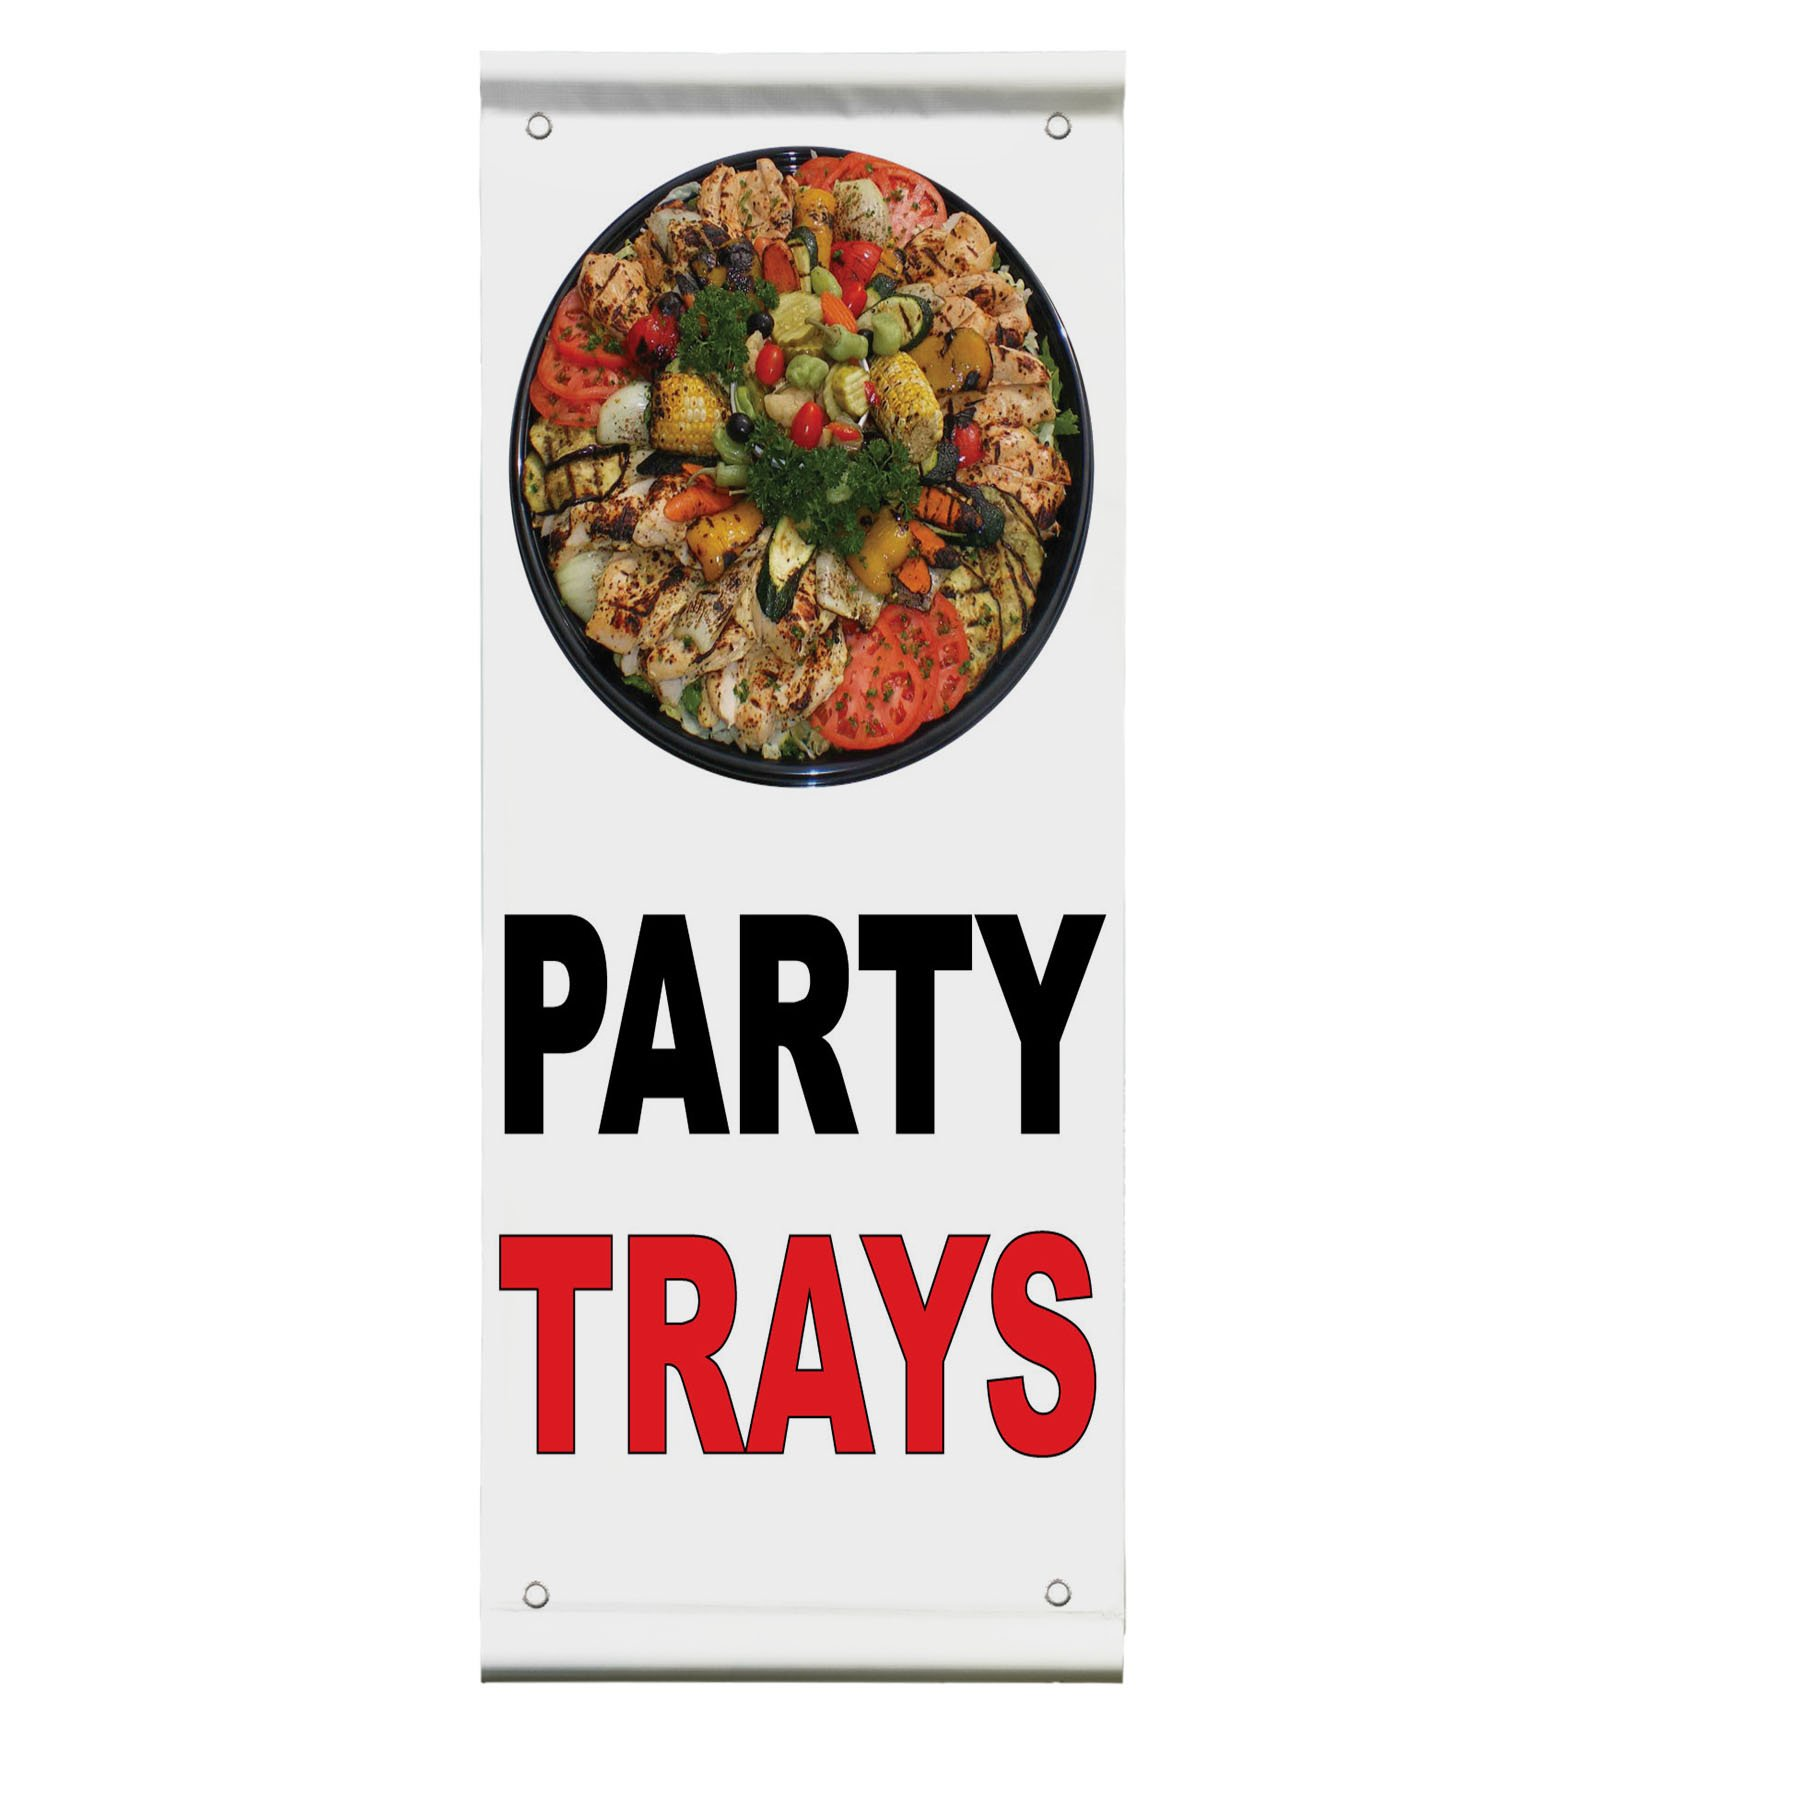 Party Trays Black Red Bar Restaurant Double Sided Pole Banner Sign 36 in x 48 in w/ Wall Bracket